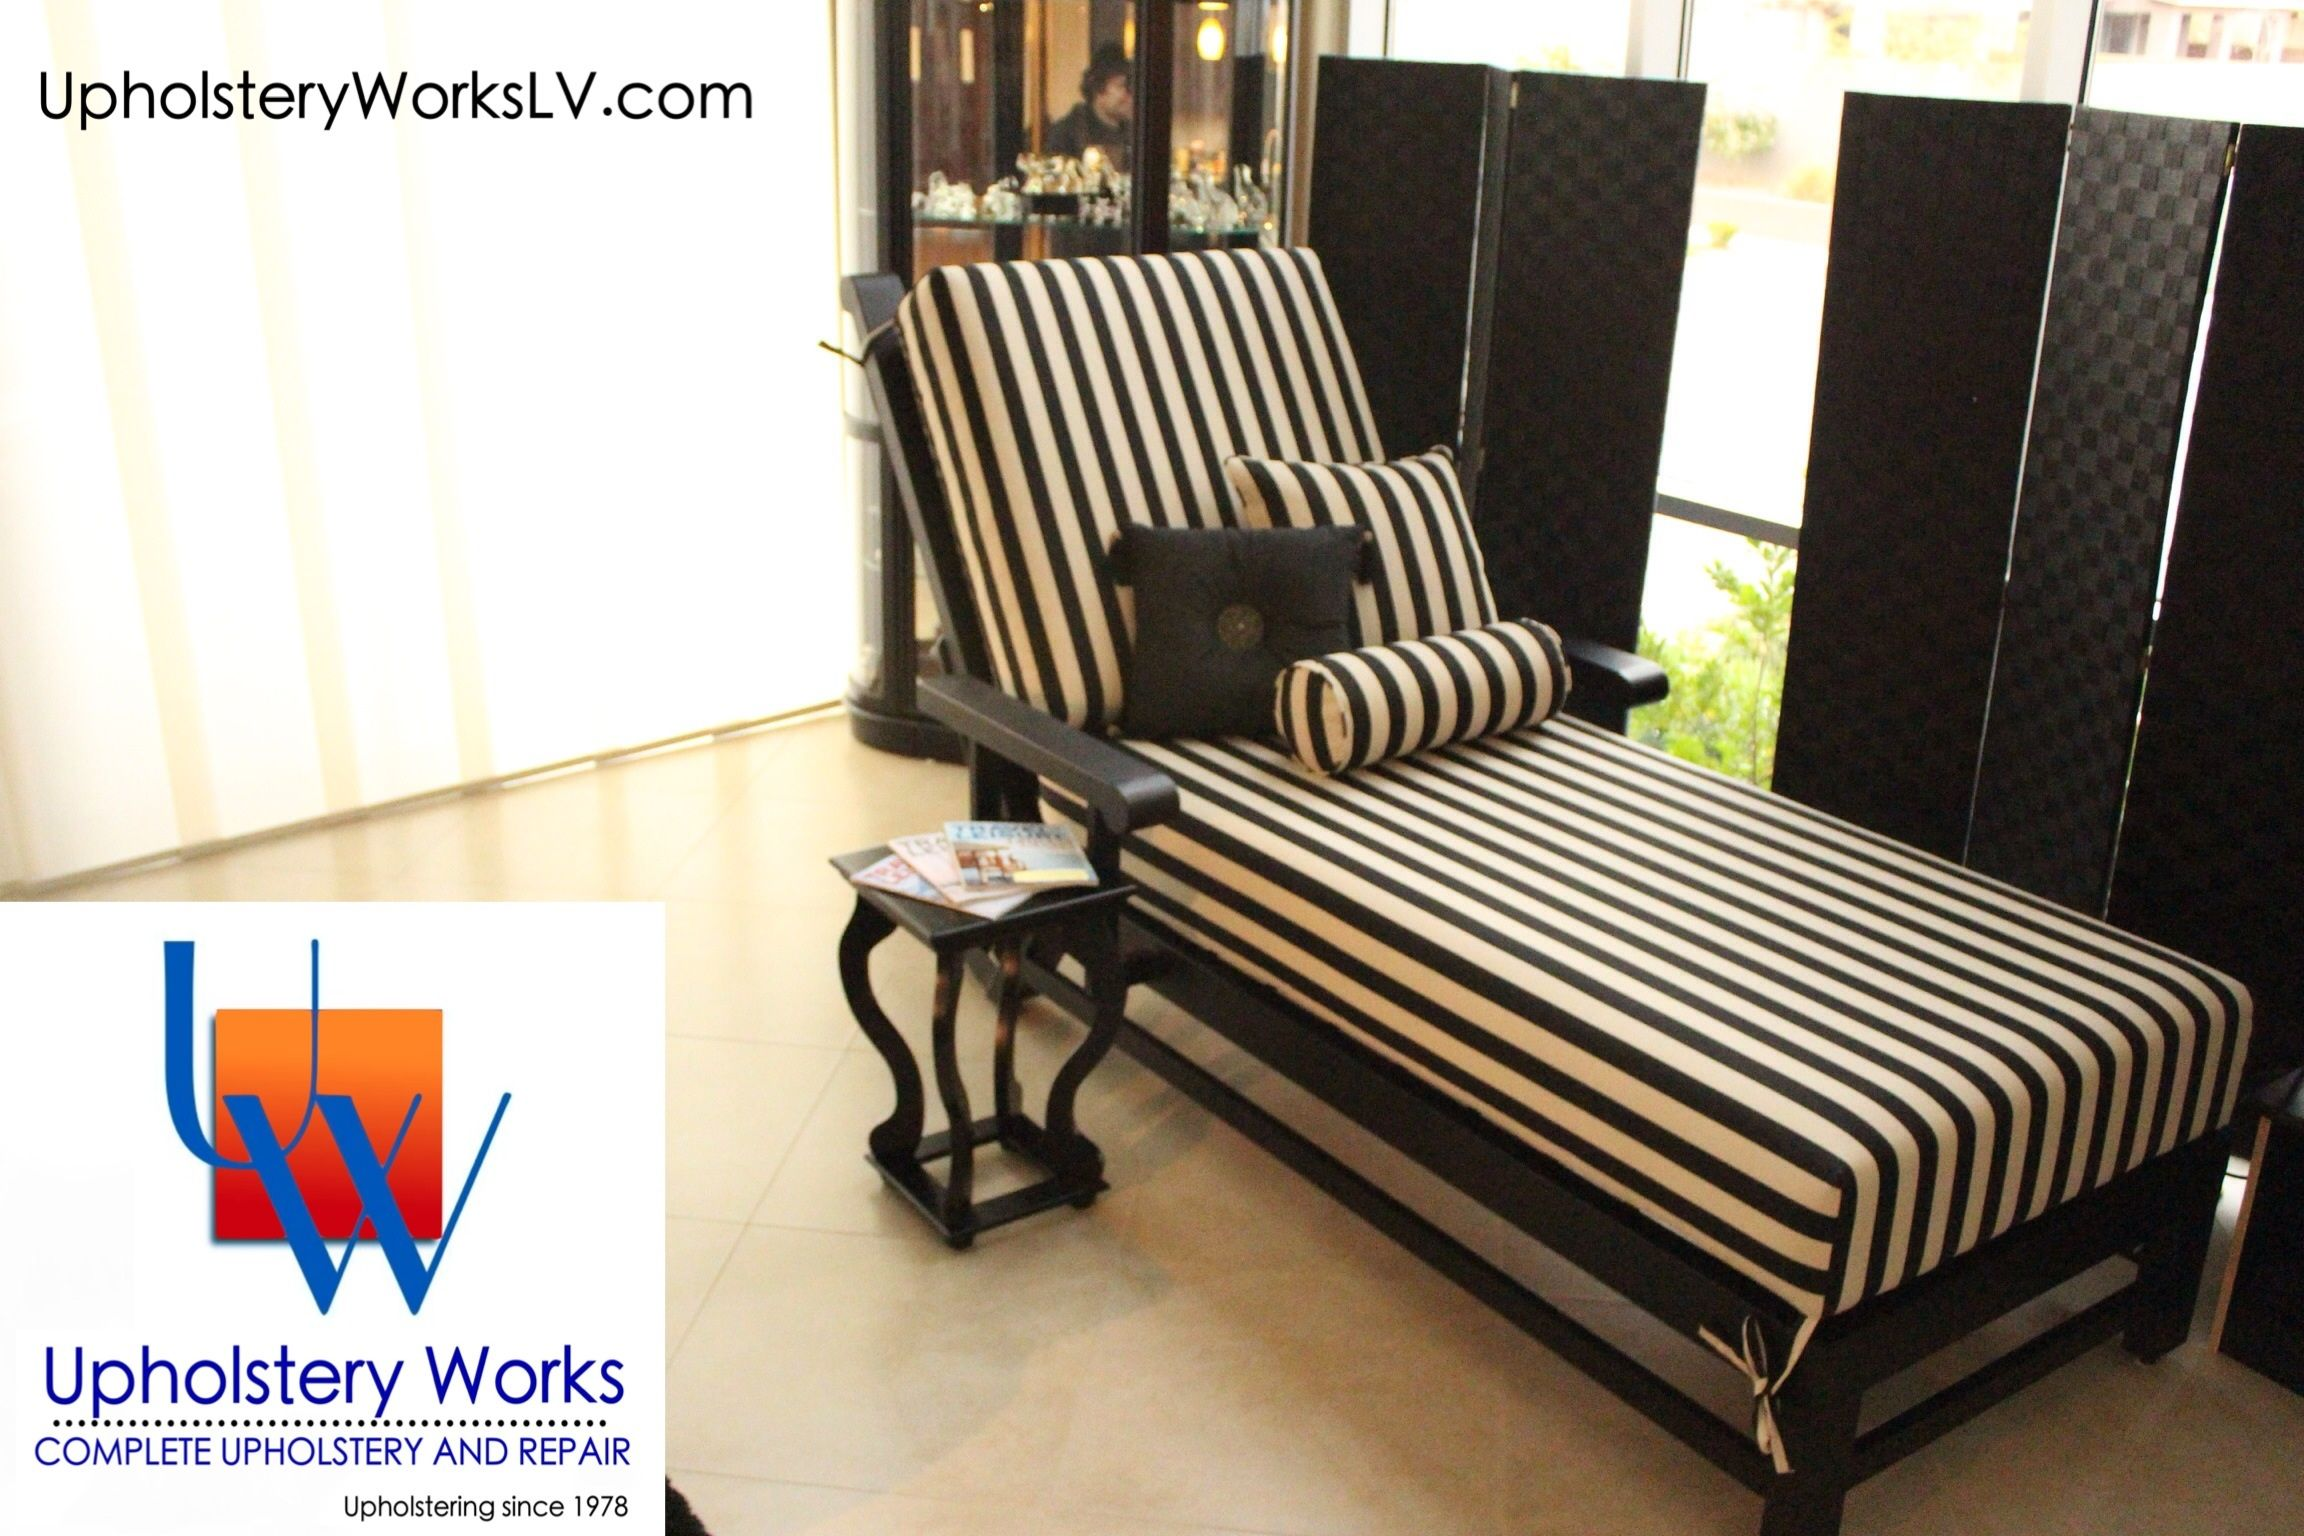 Striped chaise lounge by Upholstery Works. Las Vegas, NV http://www.UpholsteryWorksLV.com